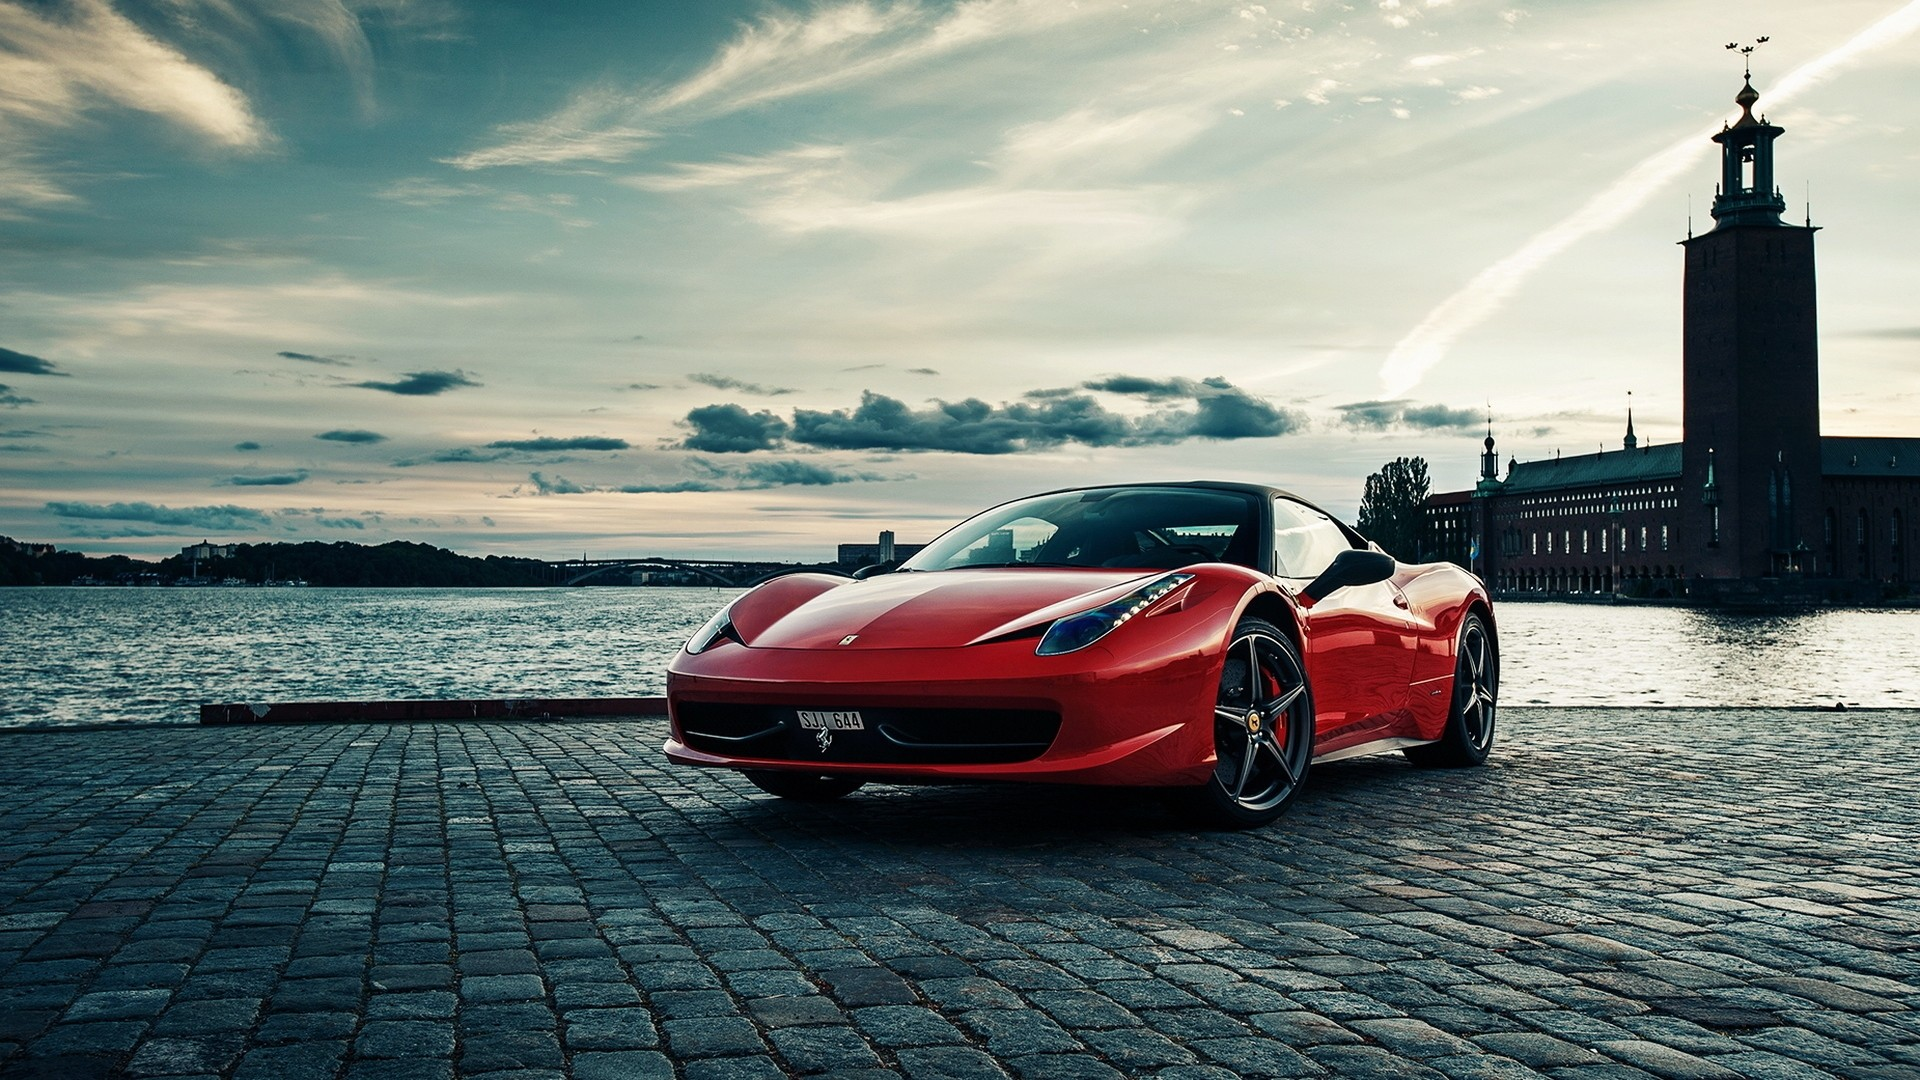 1920x1080 - Ferrari 458 Italia Wallpapers 3